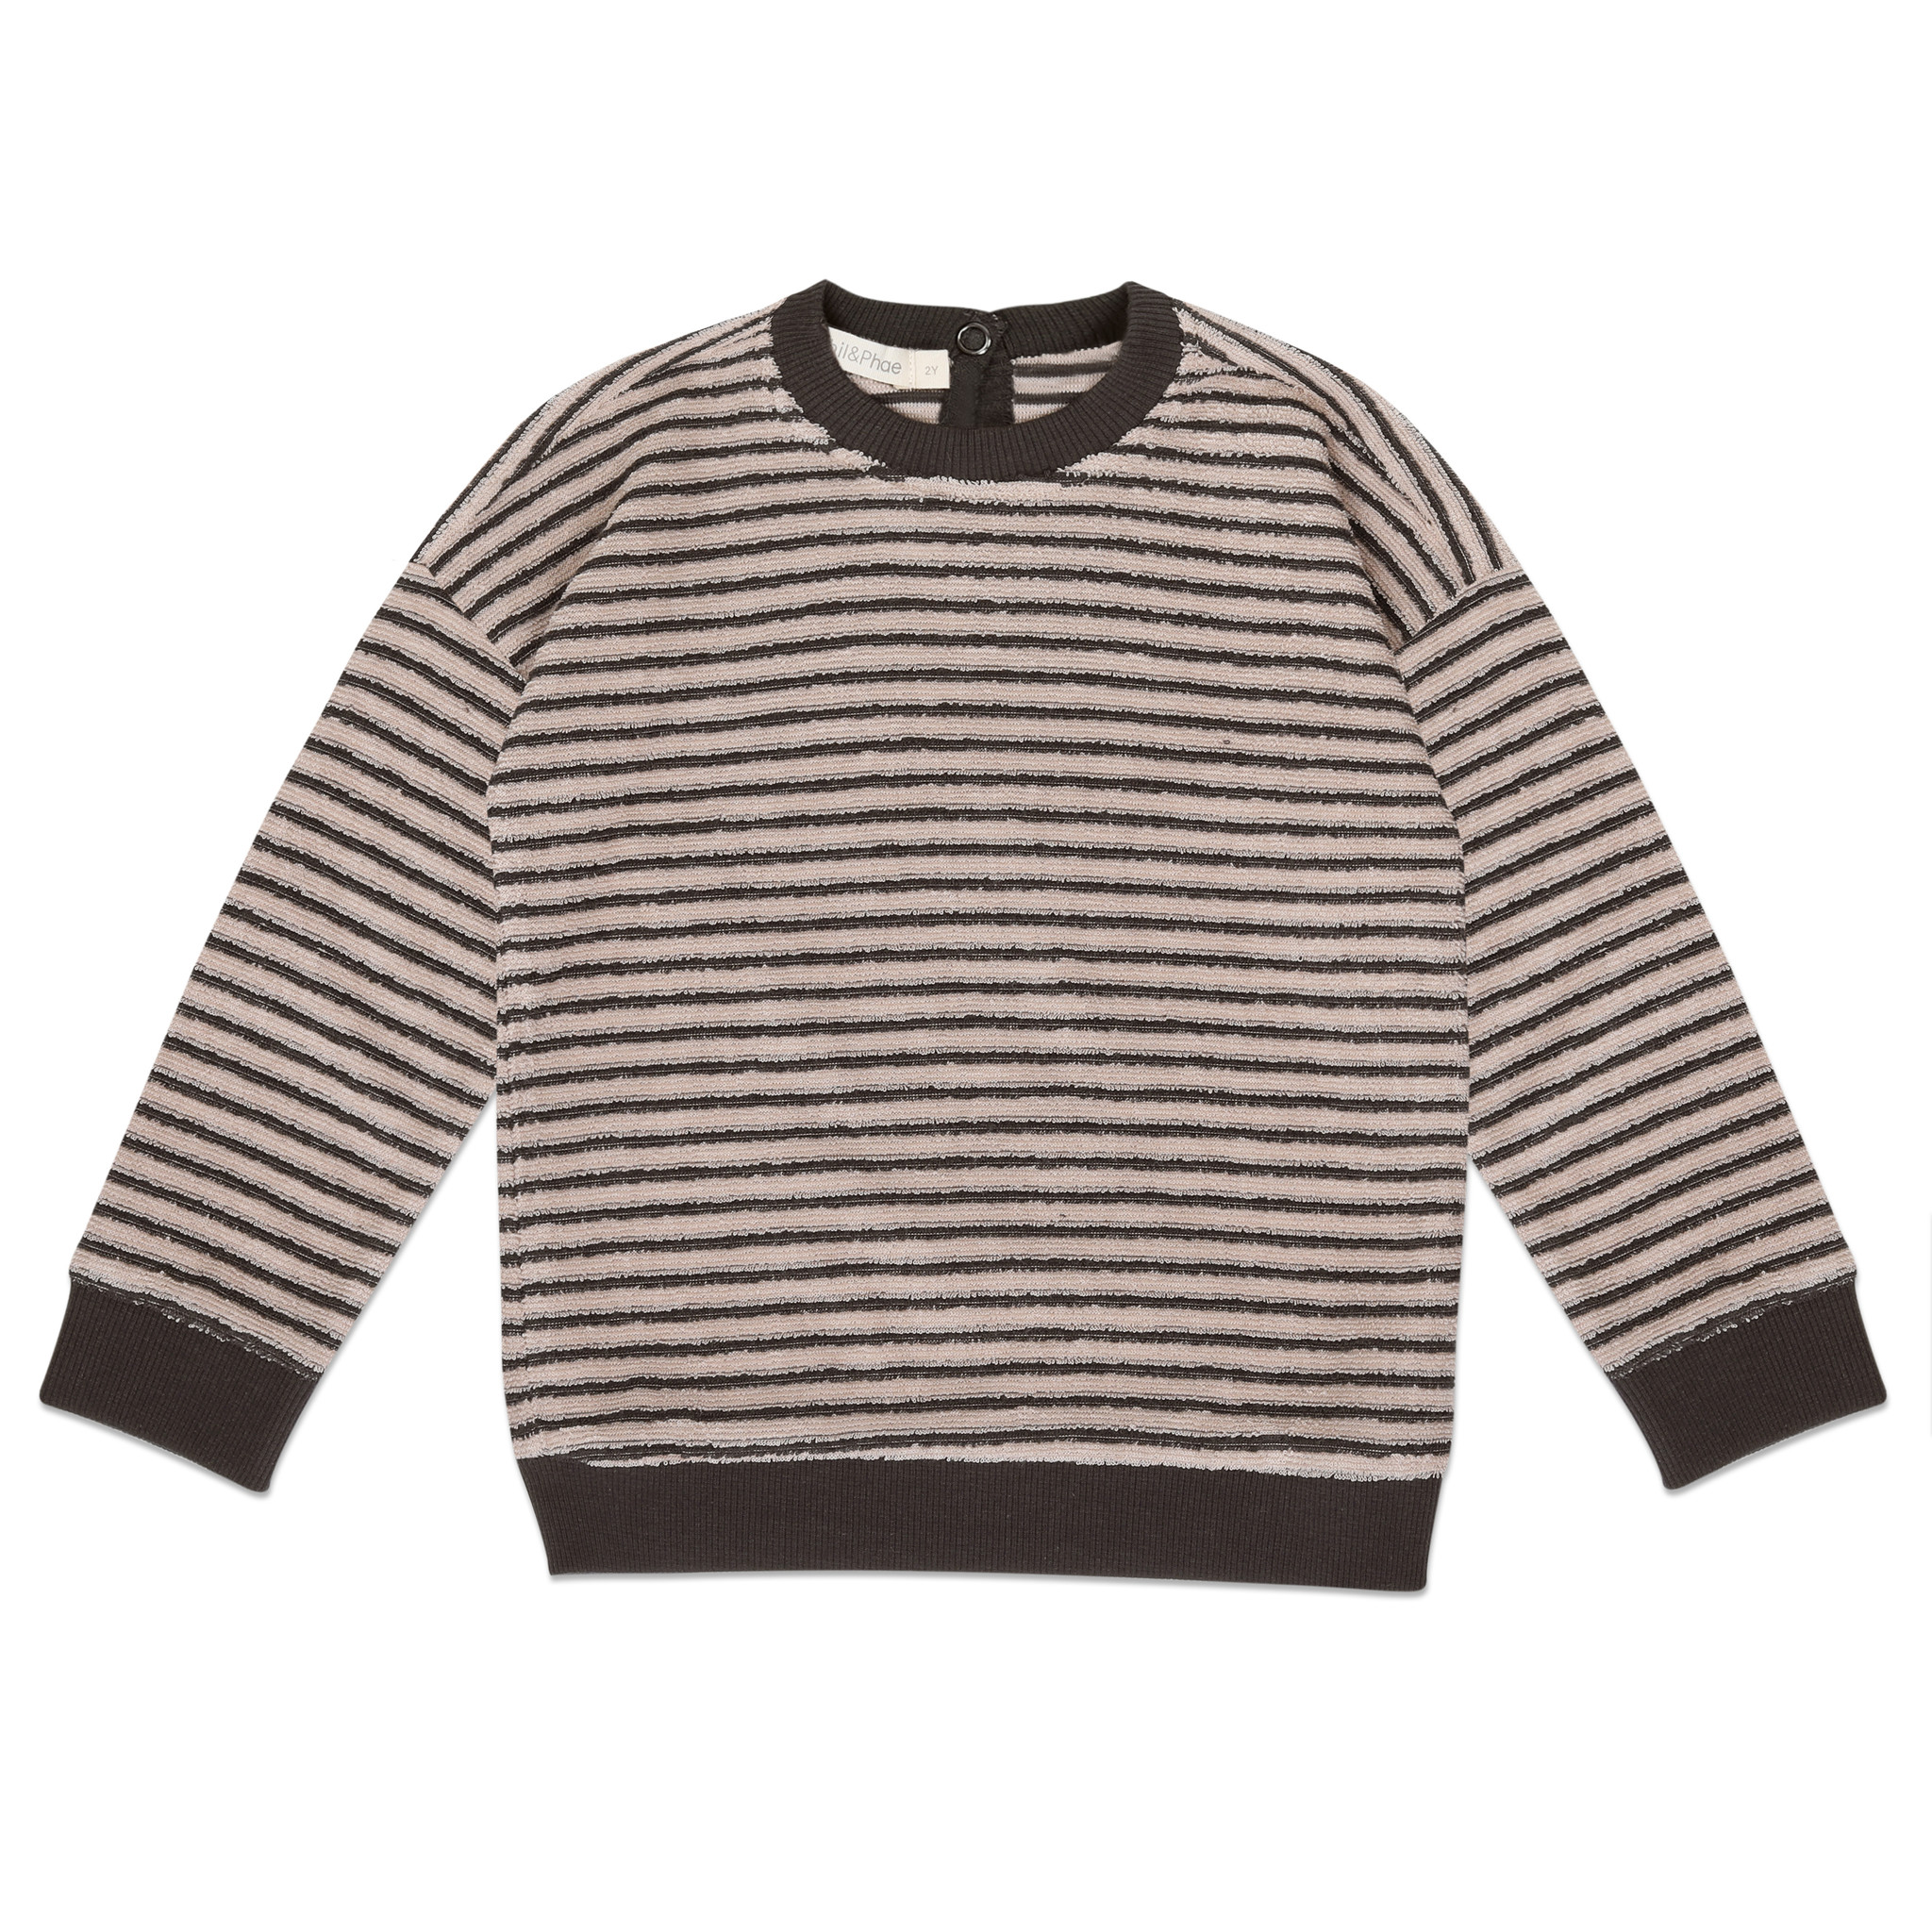 Baby sweater loopy stripes - Graphite-1